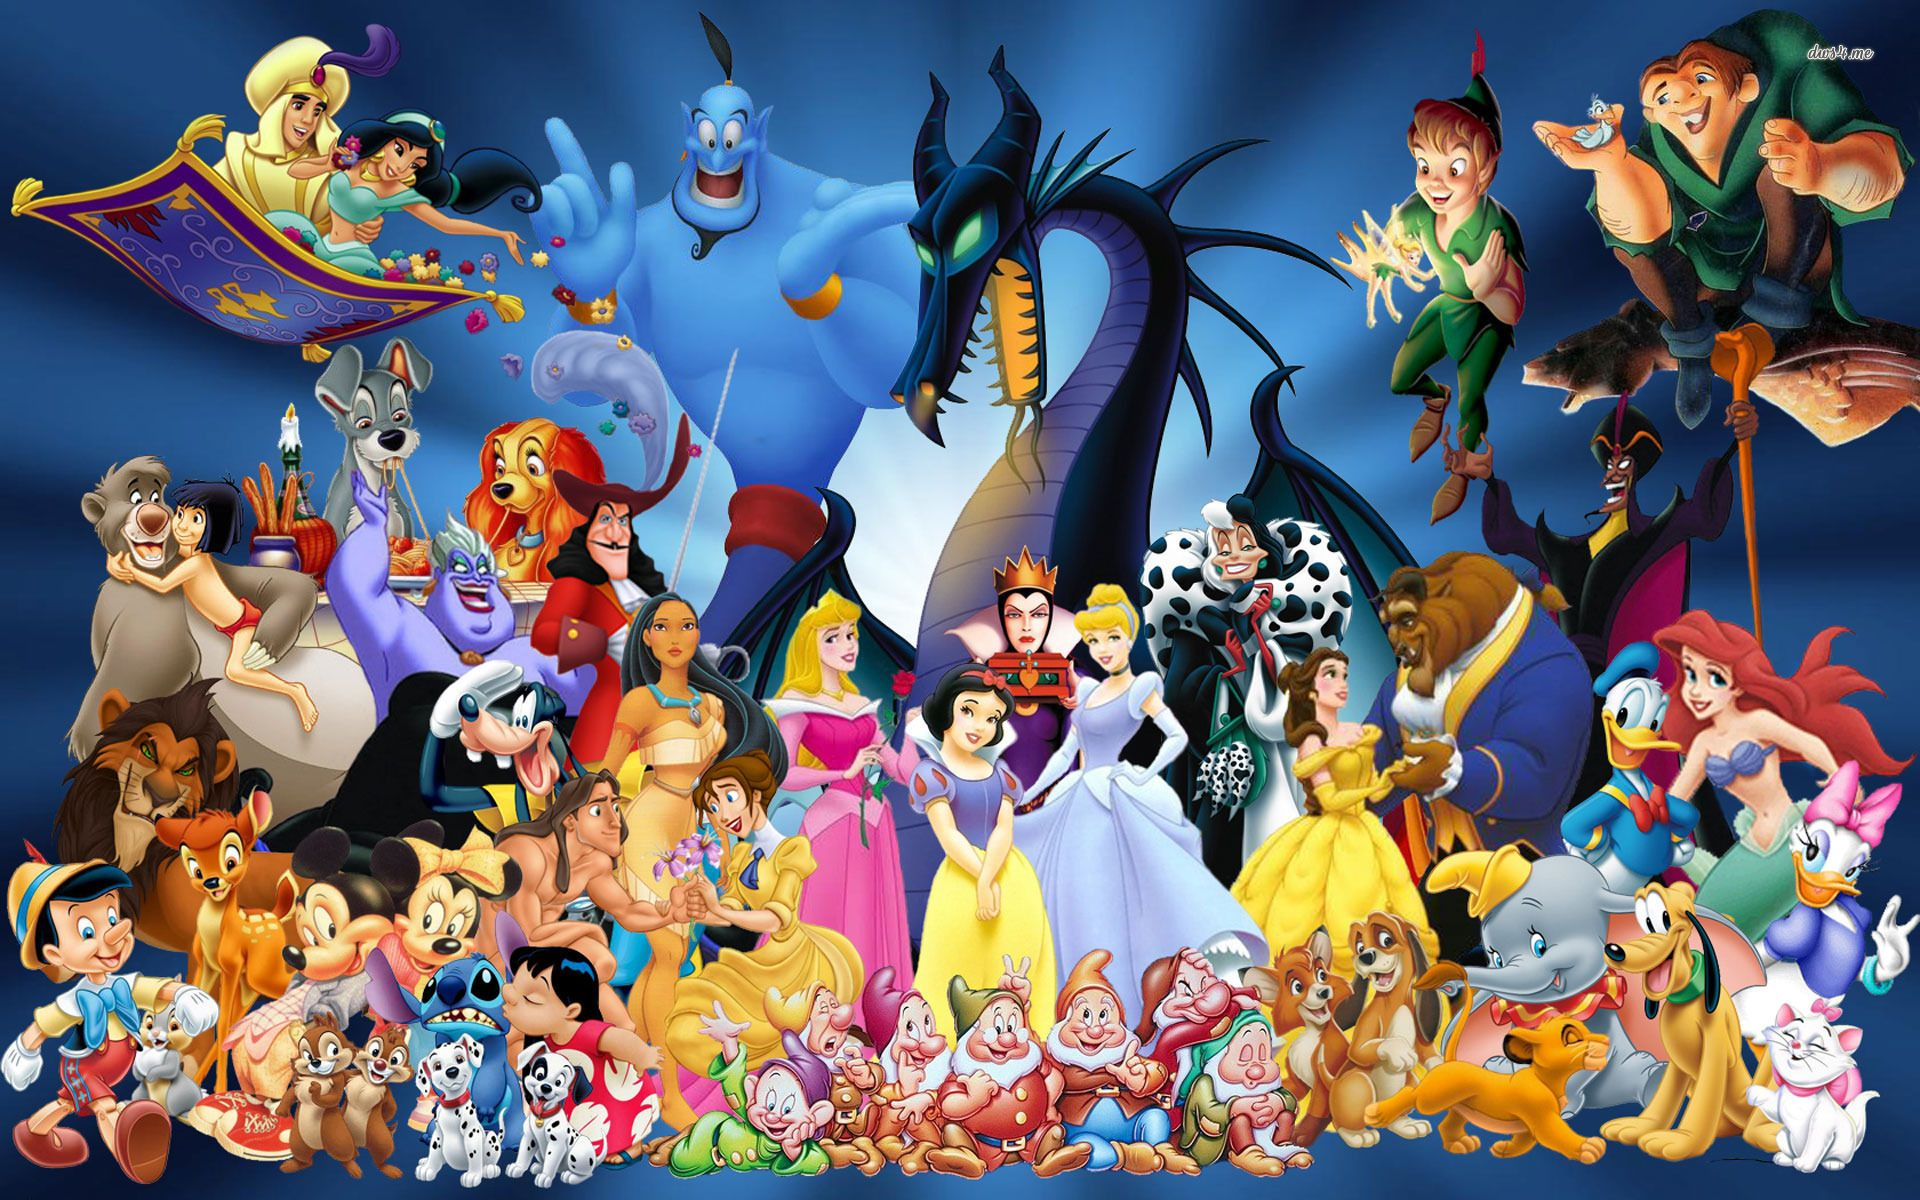 View Download Comment And Rate This 1920x1200 Disney Wallpaper